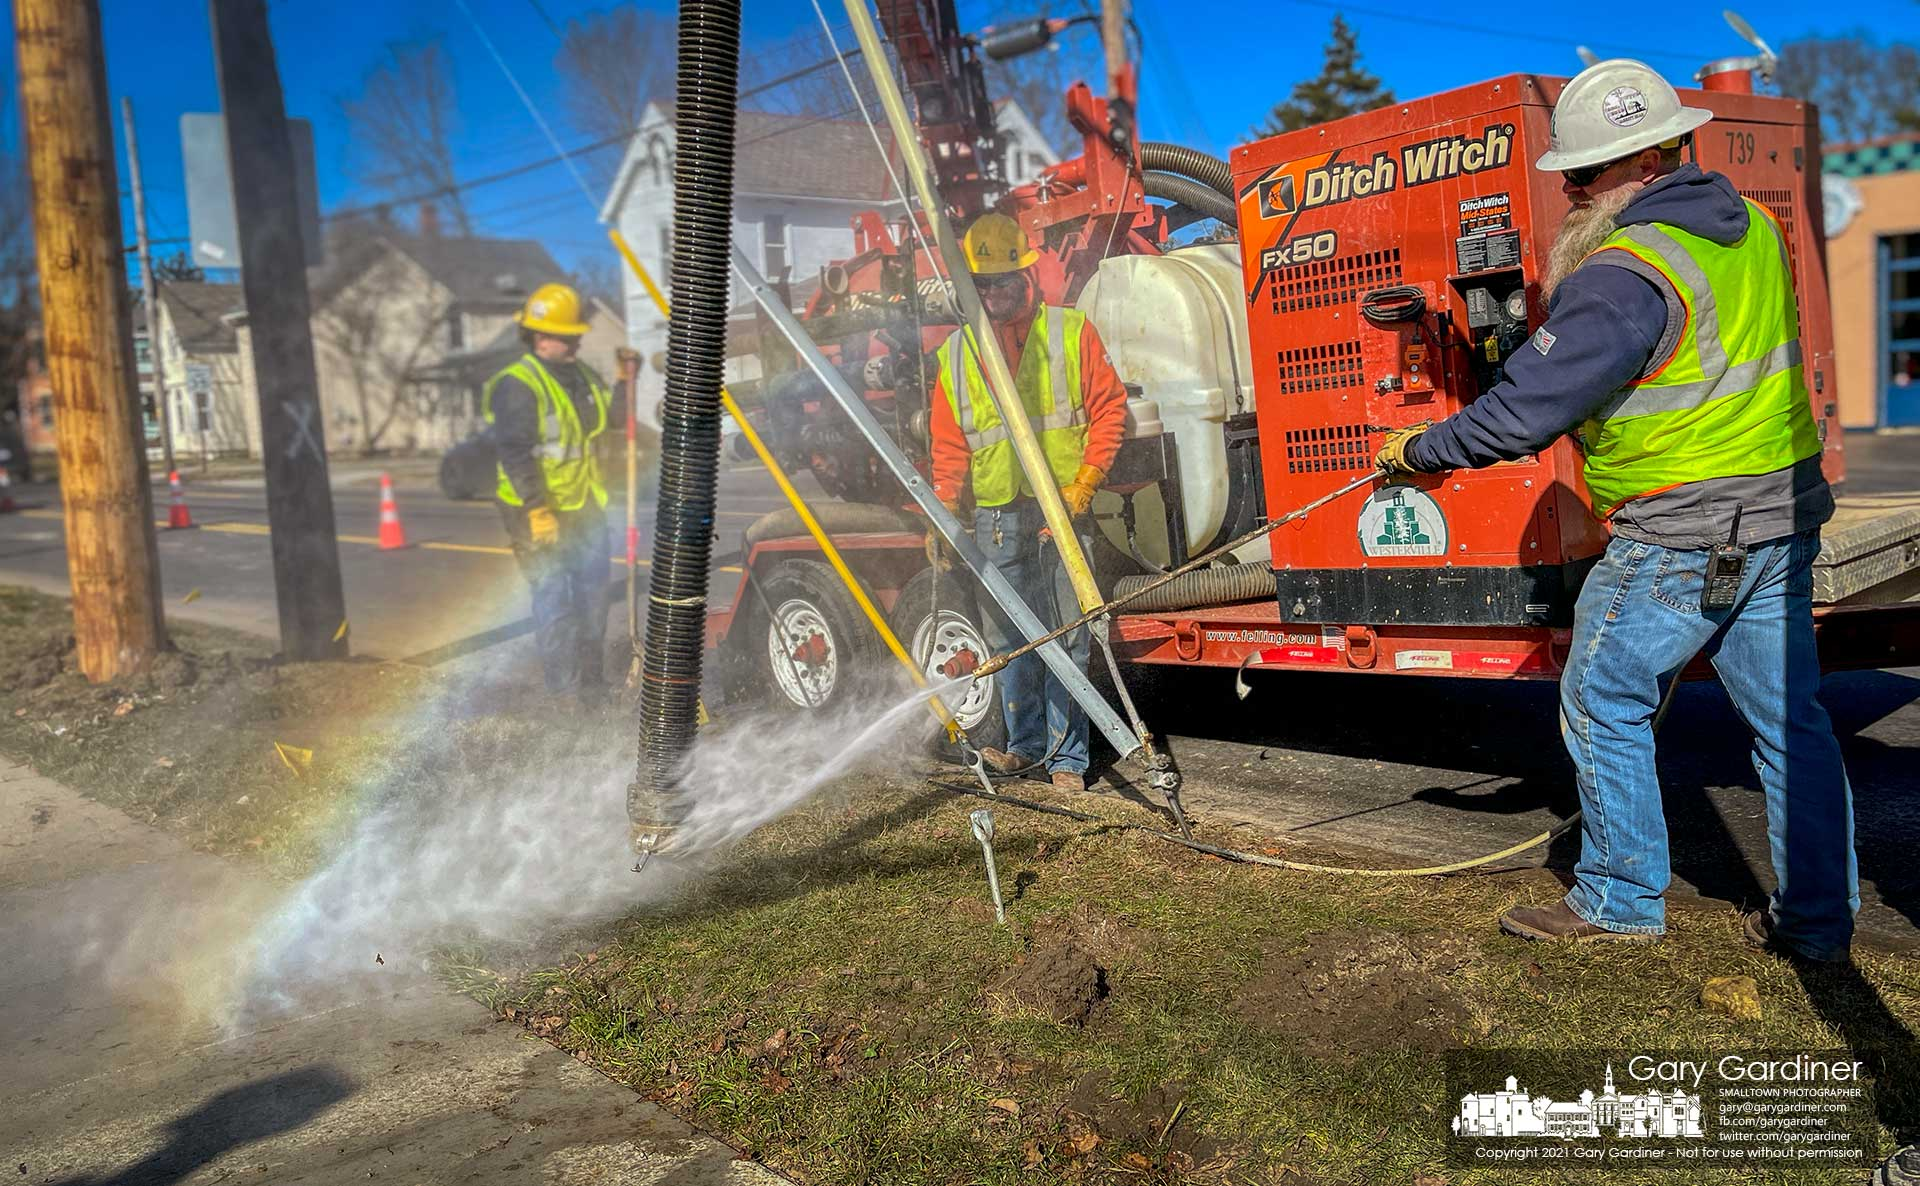 A city electric work crew creates its own small rainbow washing off a vacuum hose used to clear holes during the replacement of a utility pole in Uptown Westerville. My Final Photo for March 2, 2021.